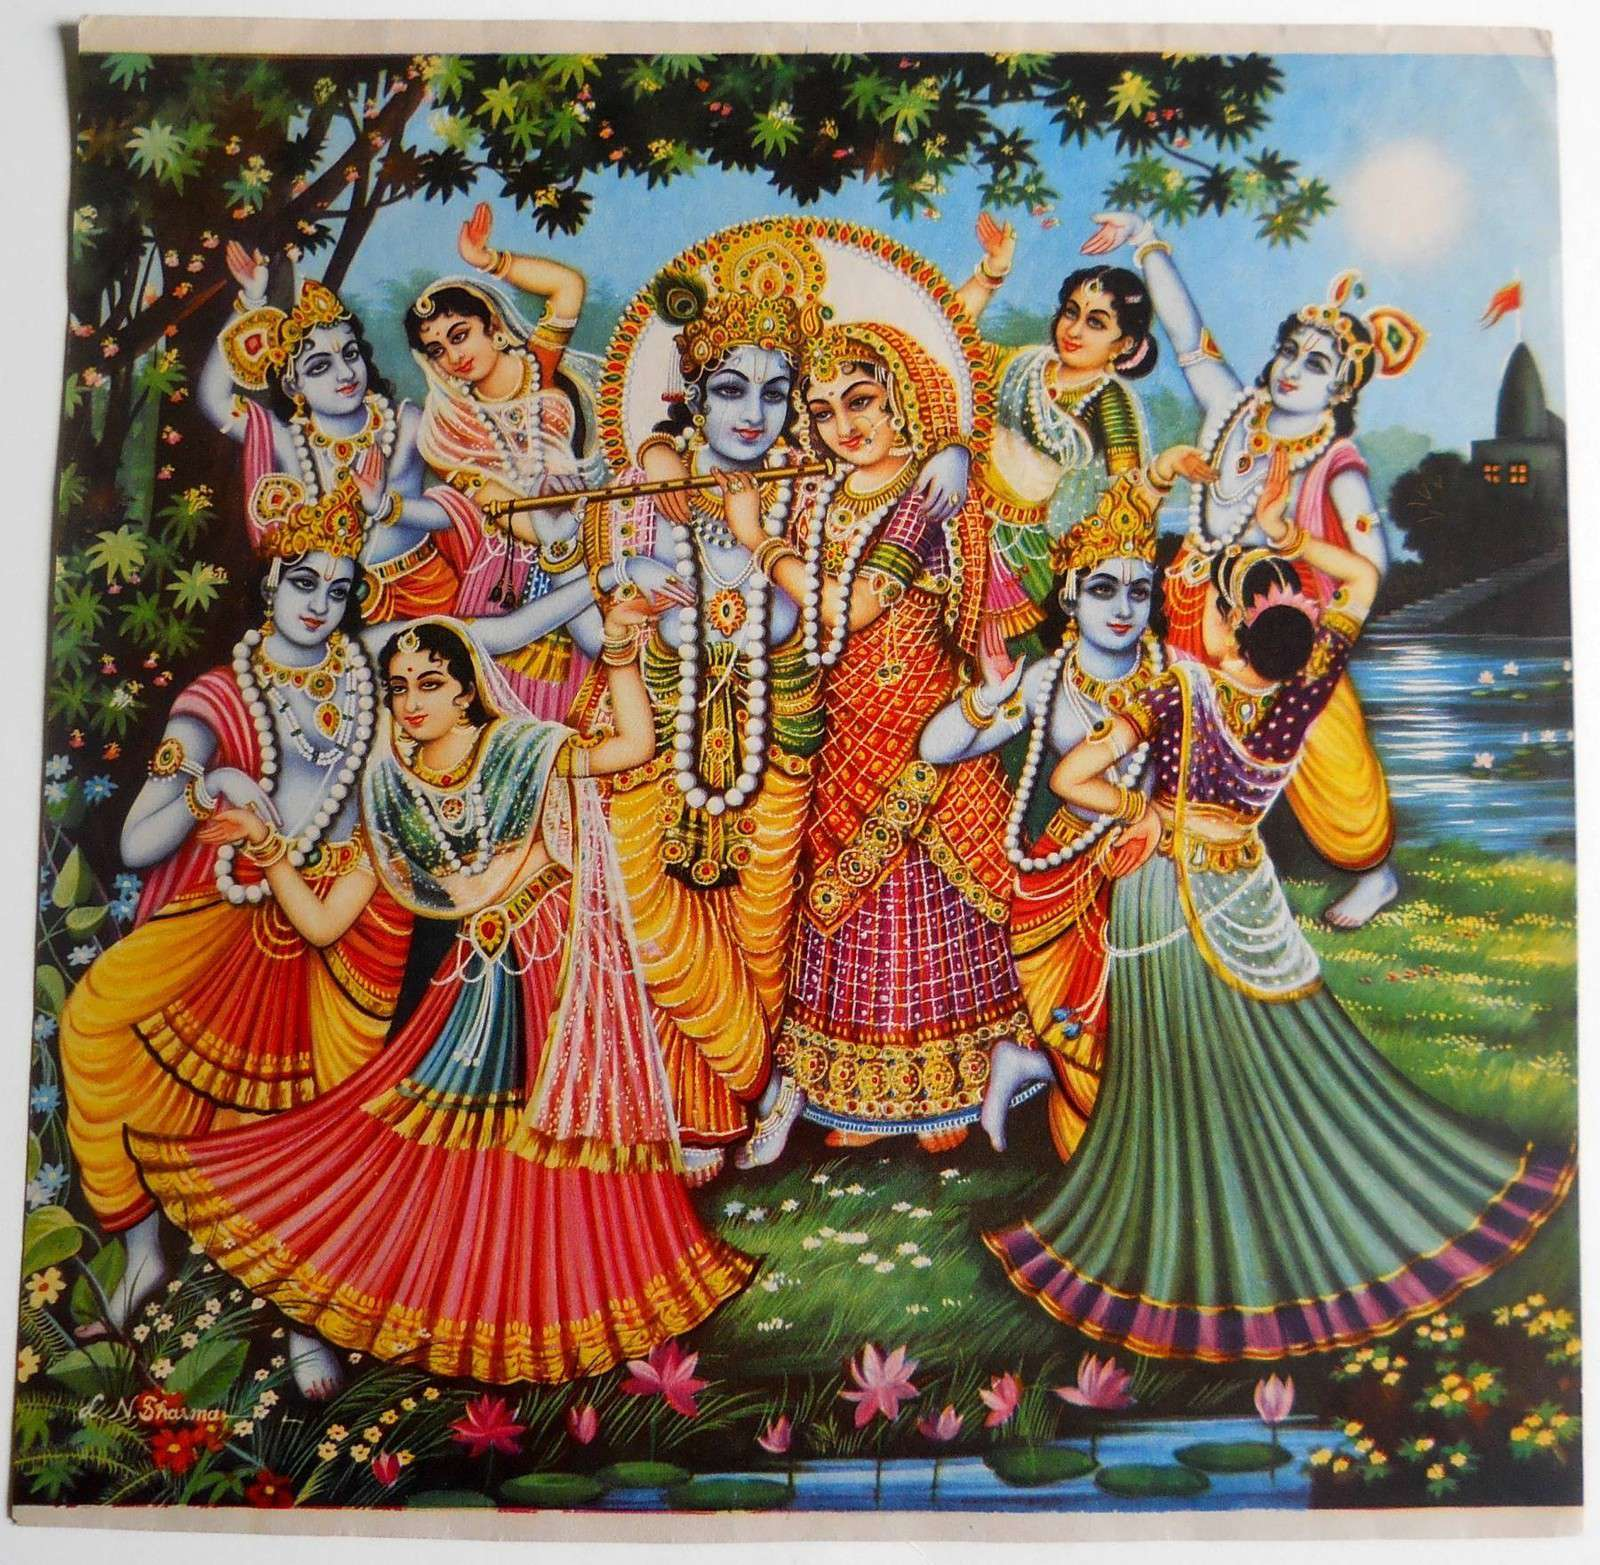 Latest Shri Krishna Rasleela Pictures for free download